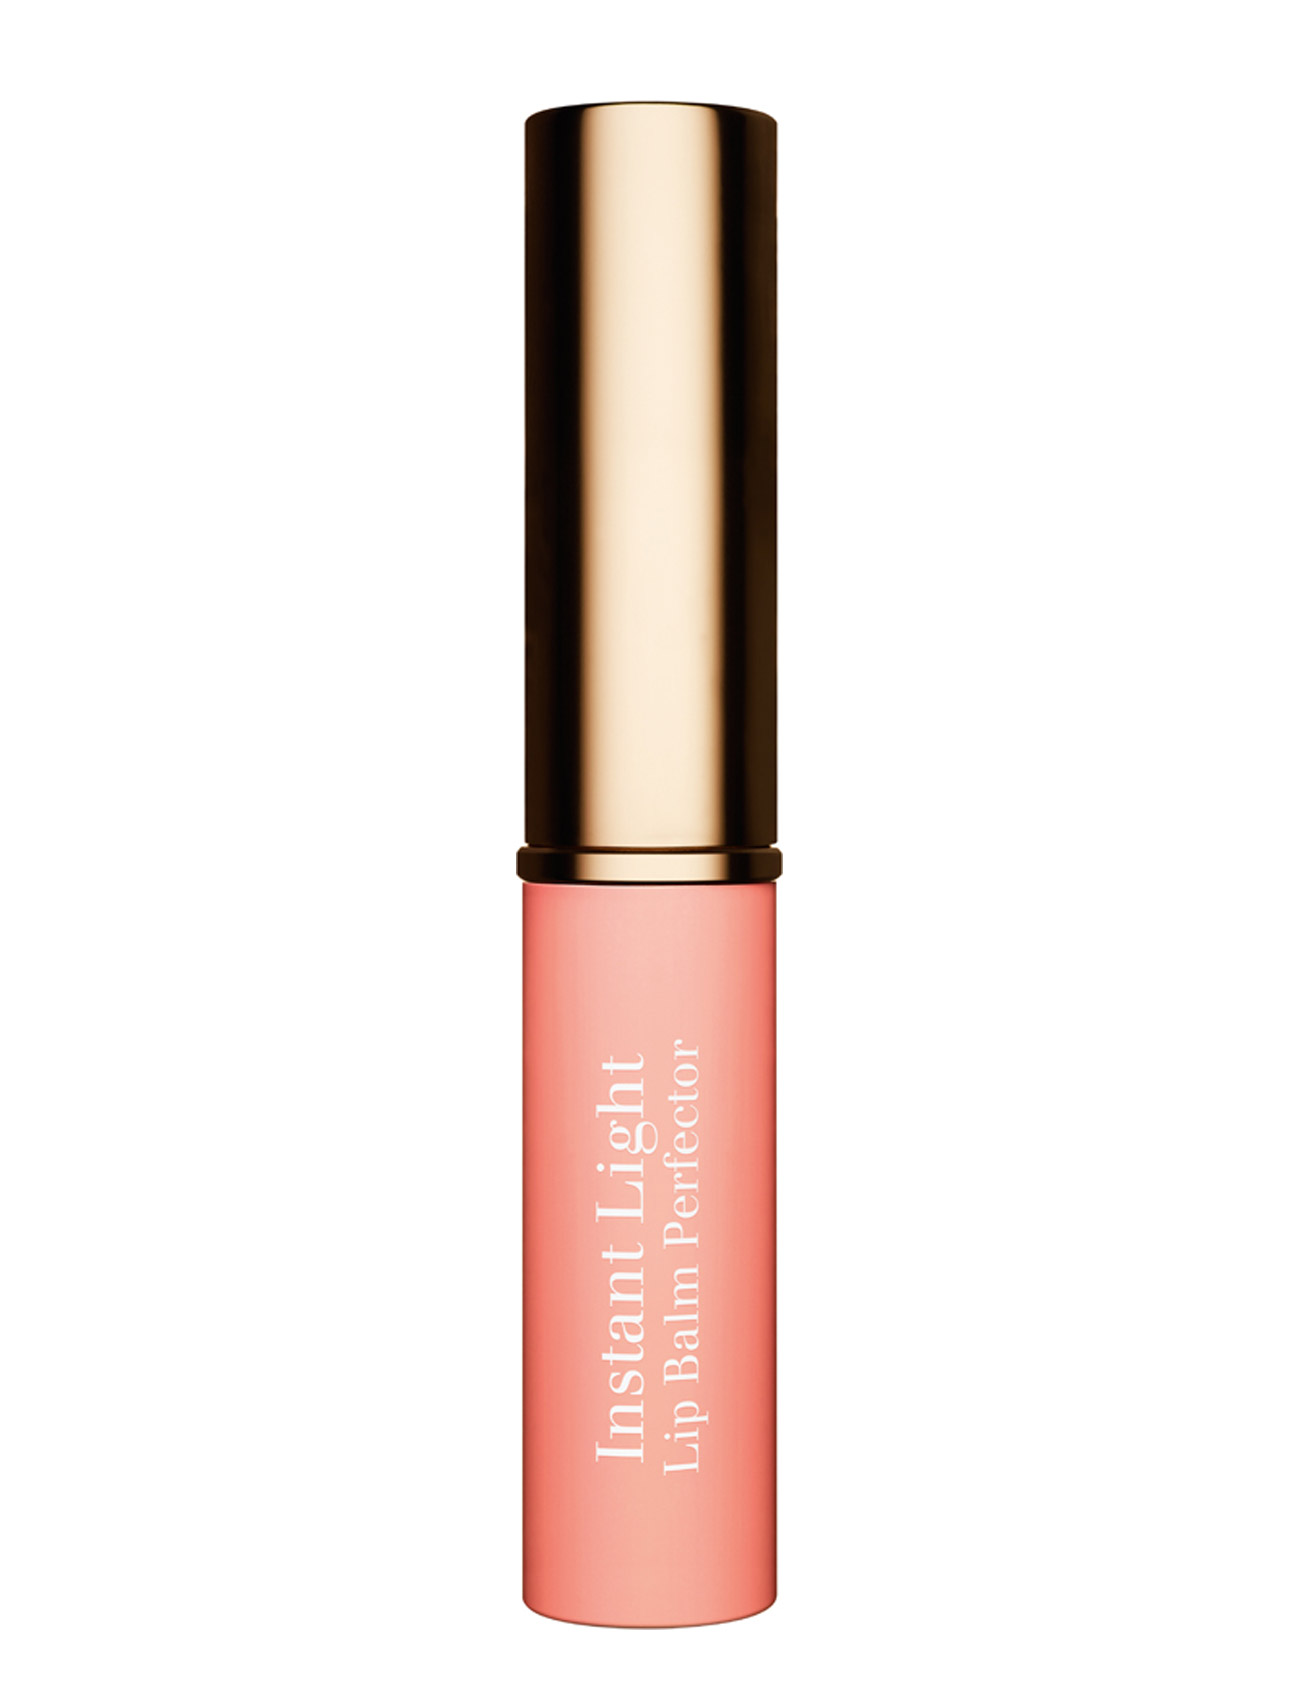 Clarins - Instant Light Lip Balm Perfector - 02 Coral